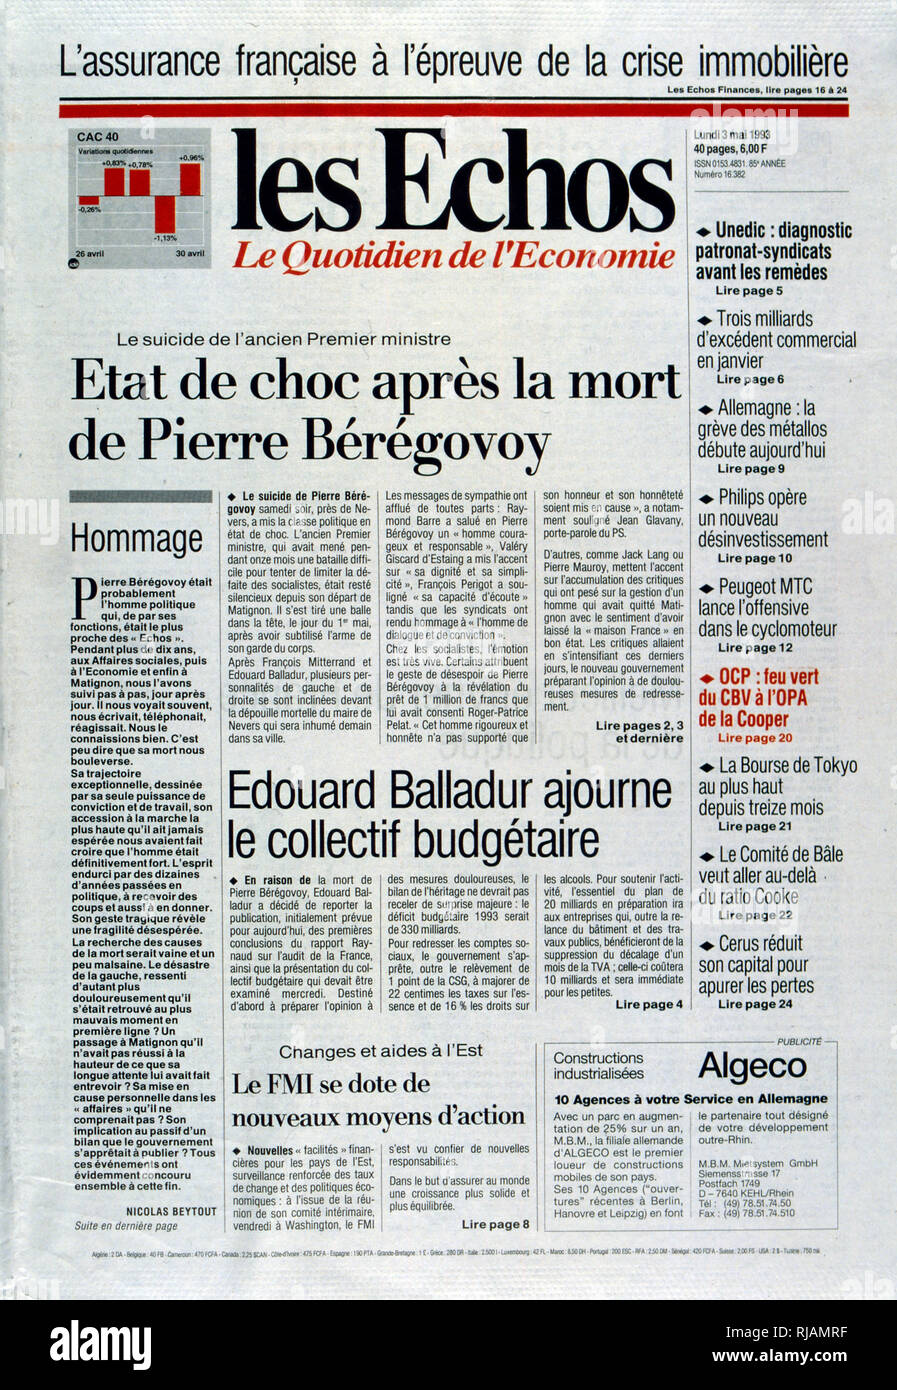 Cover of the French publication 'Les Echos' after the suicide of Pierre Beregovoy, May 1993. Pierre Eugene Beregovoy (1925 - 1 May 1993) was a French politician who served as Prime Minister of France under President Francois Mitterrand from 2 April 1992 to 29 March 1993. He committed suicide. His successor as Prime Minister, Edouard Balladur, is seen leaving the funeral in Nevers. - Stock Image